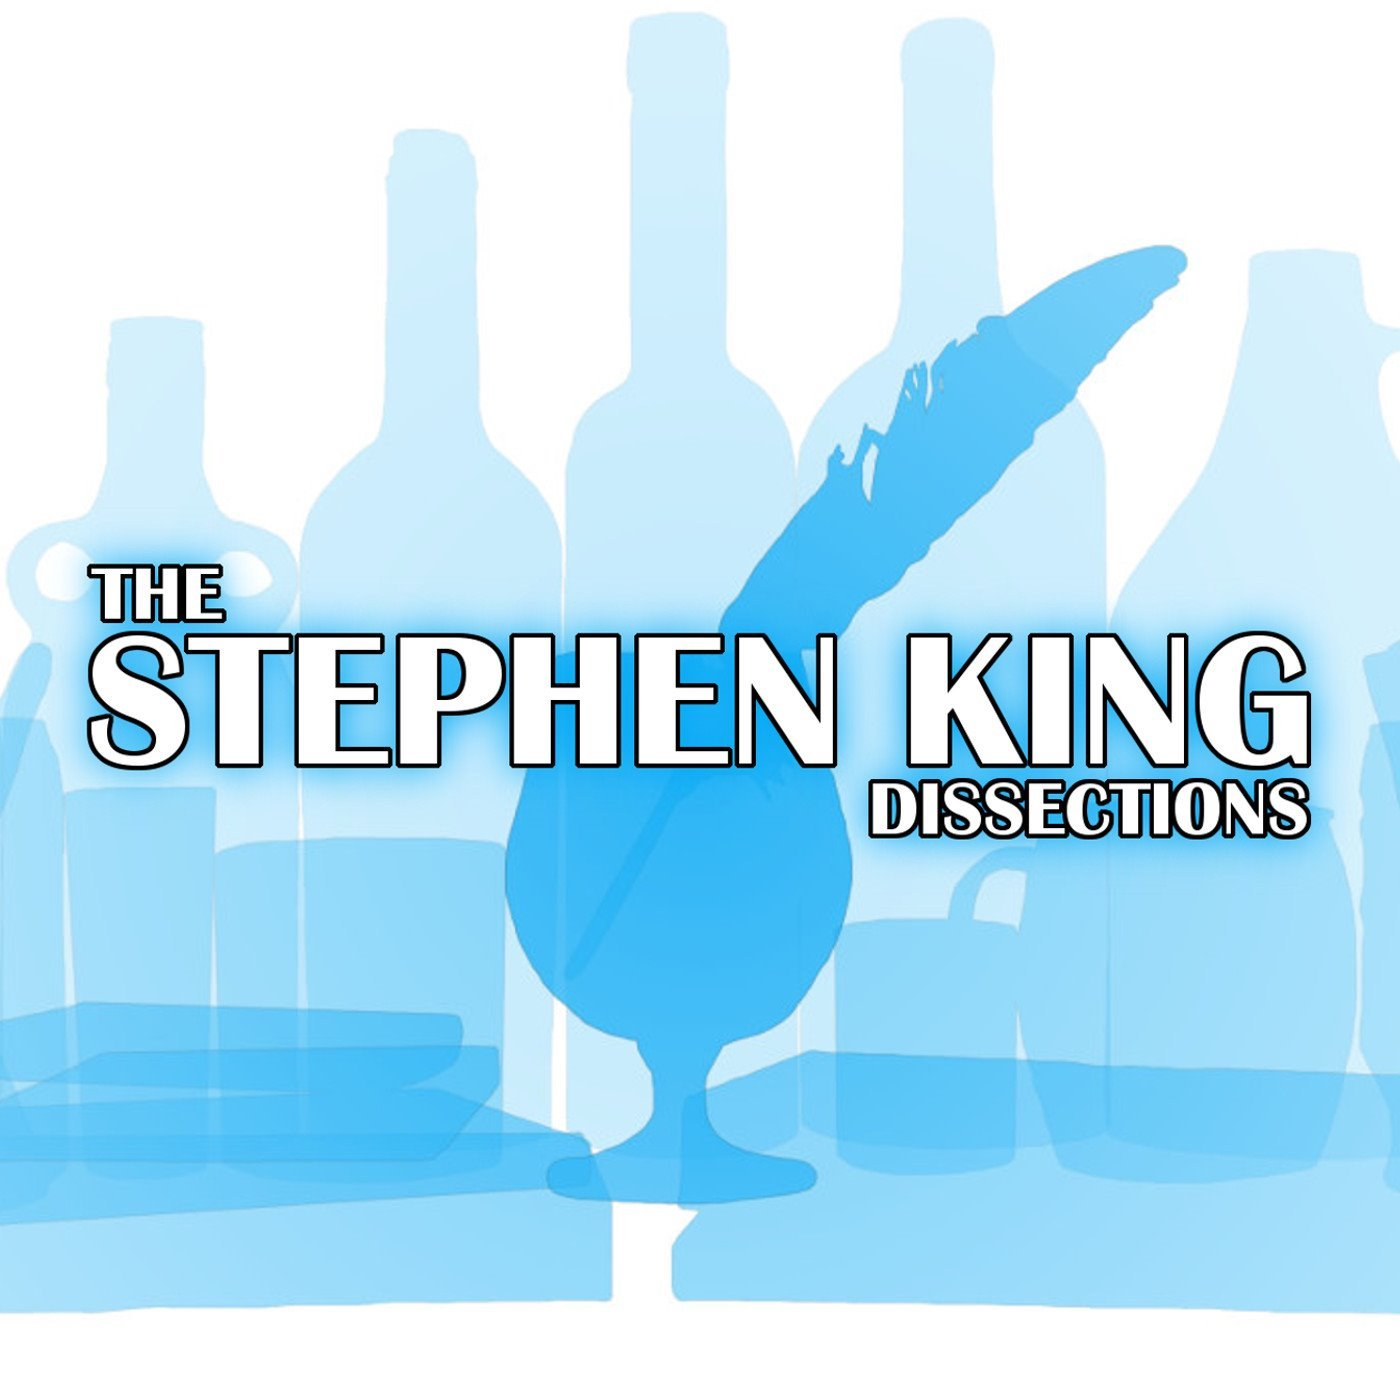 Stephen King's THE DEAD ZONE - Review and Analysis